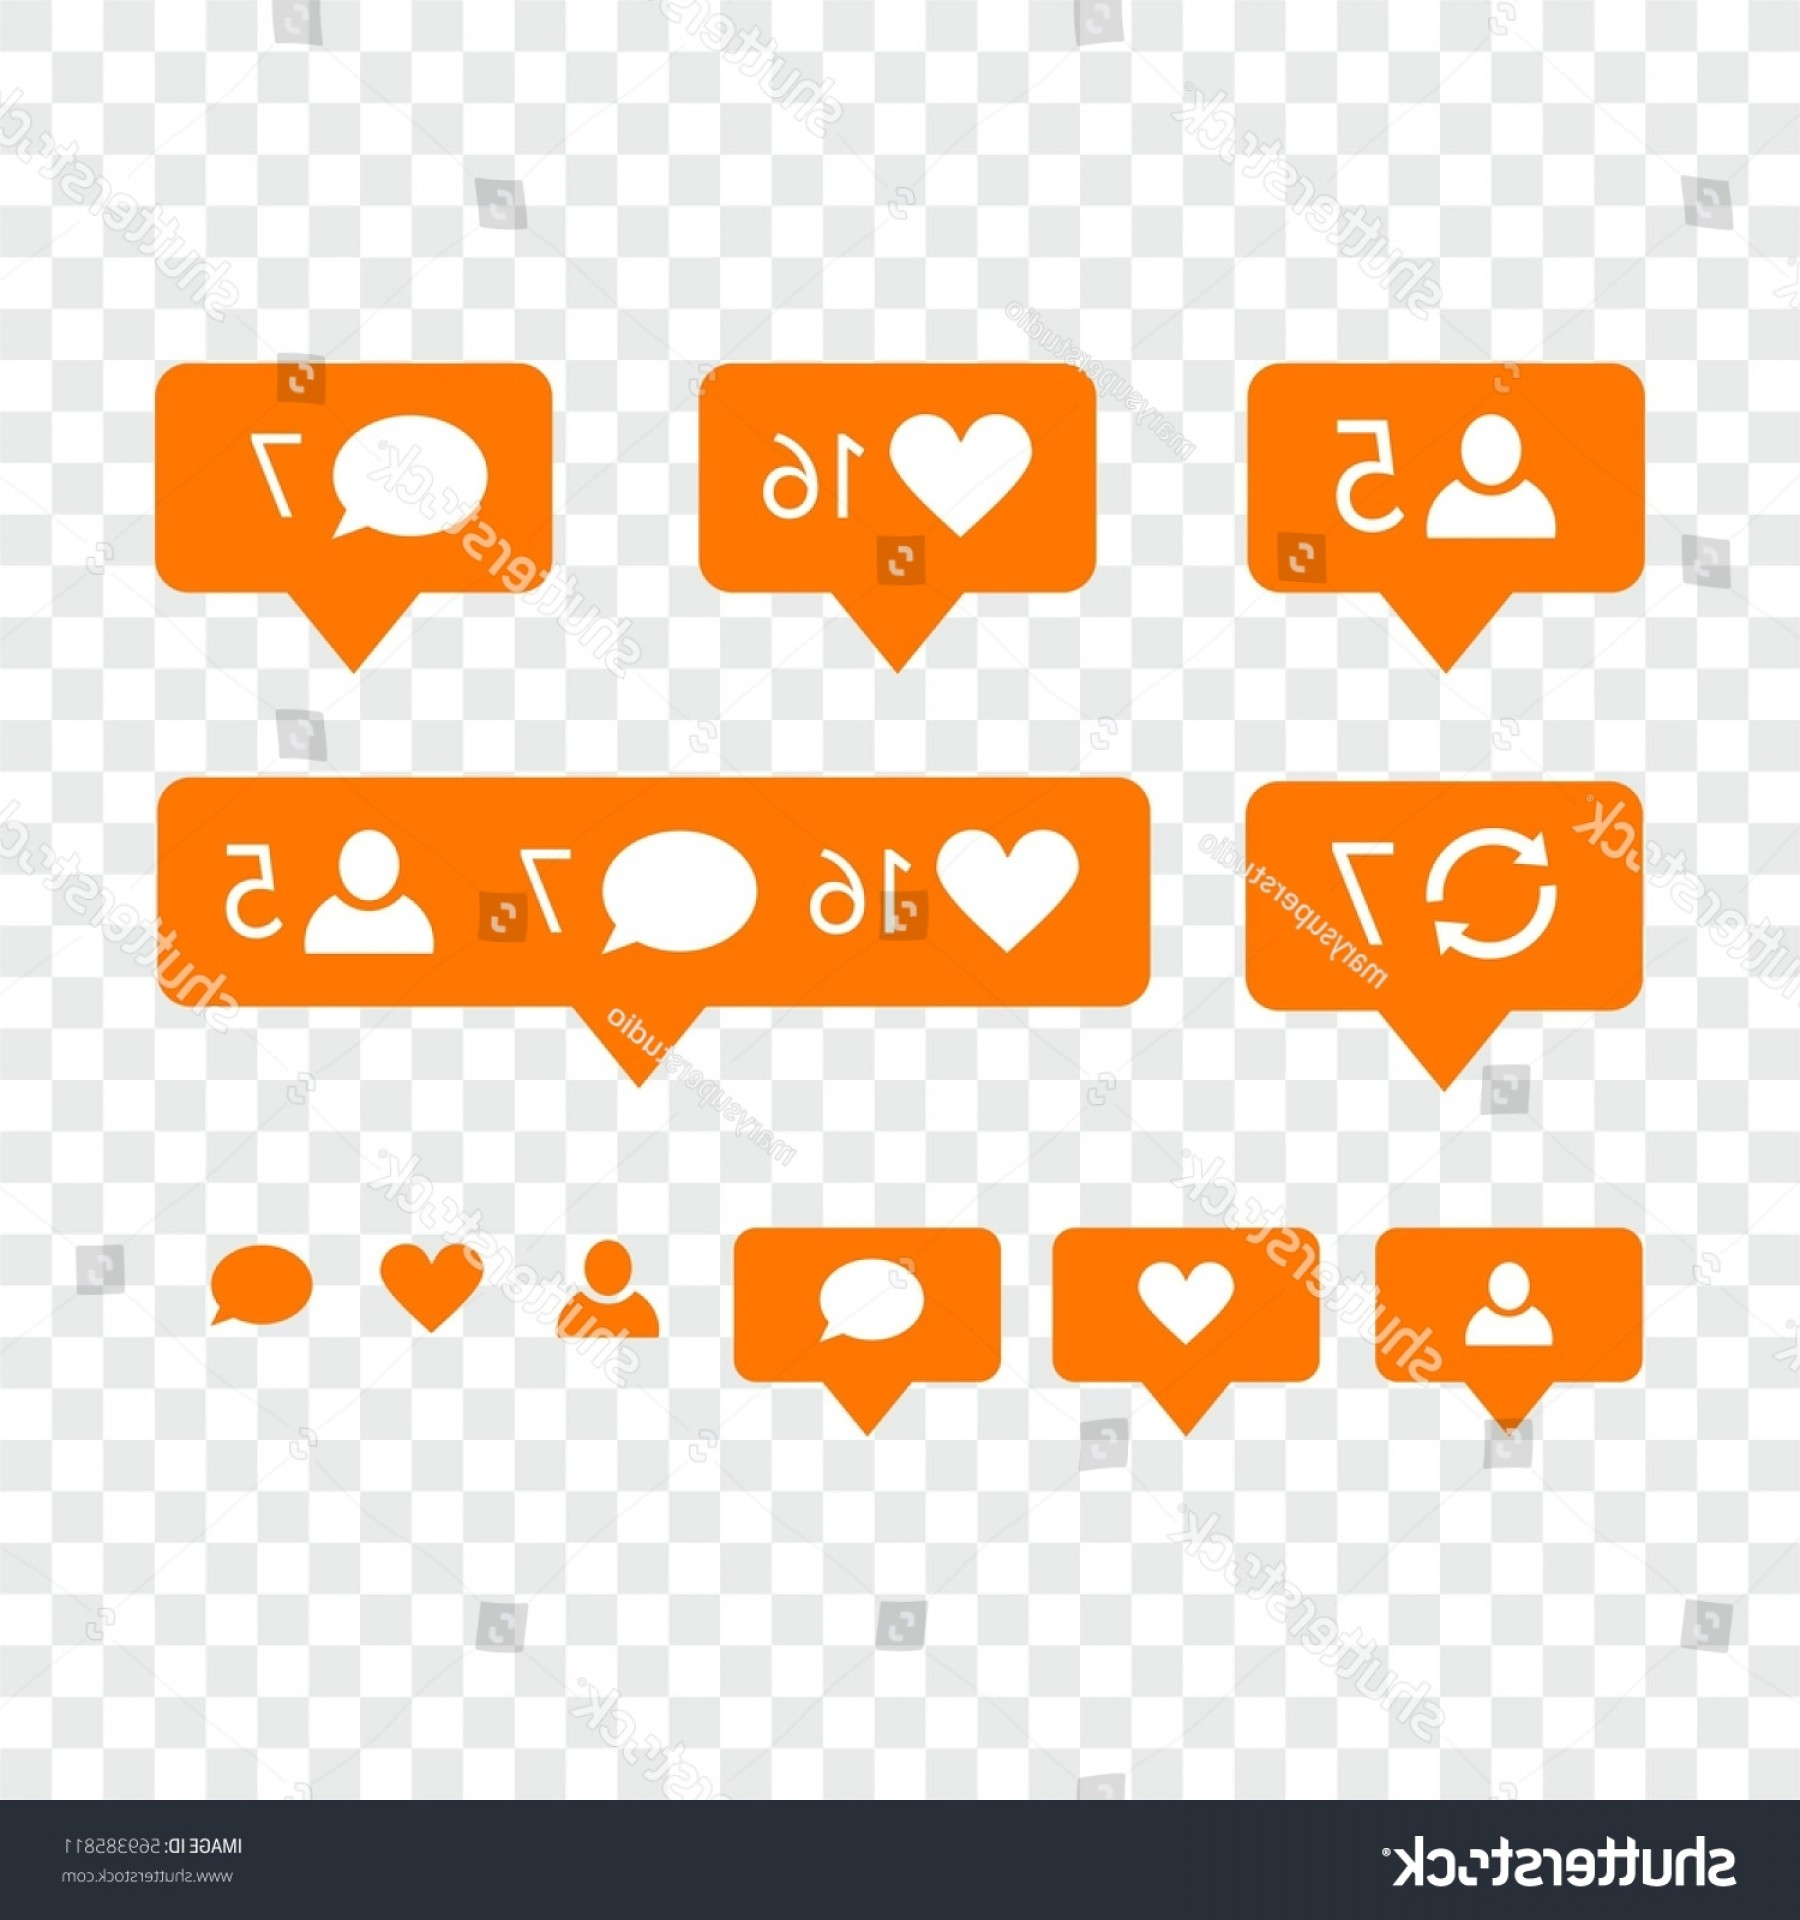 Official Instagram Icon Vector: Like Symbol Message Notification Set Instagram